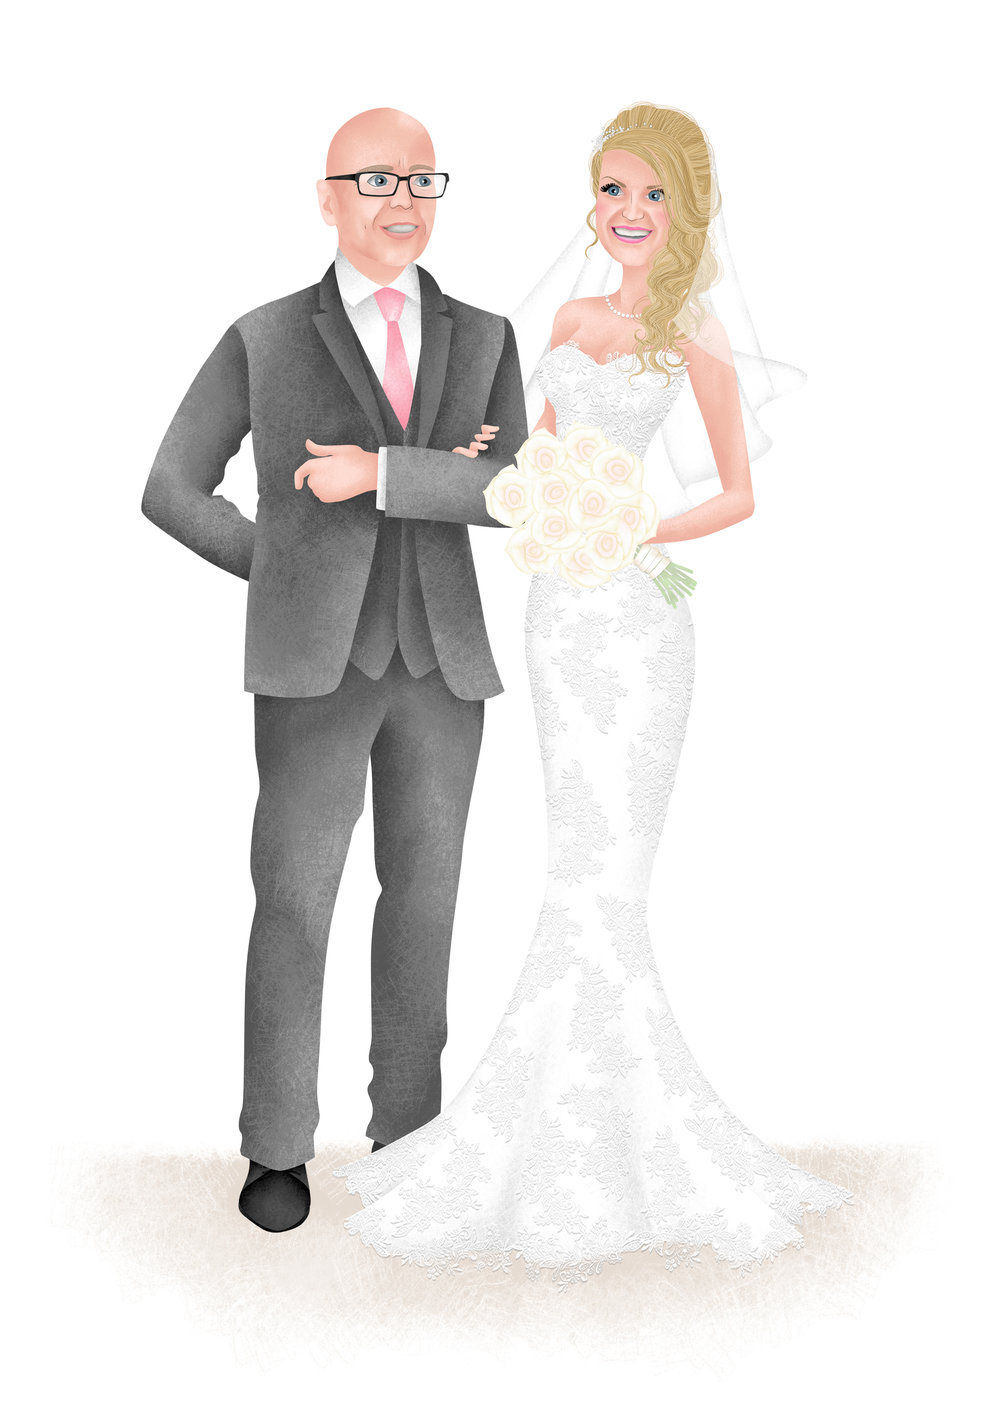 Hannah Weeks Illustration - Vicki Mitton - BEspoke Portrait - A4.jpg